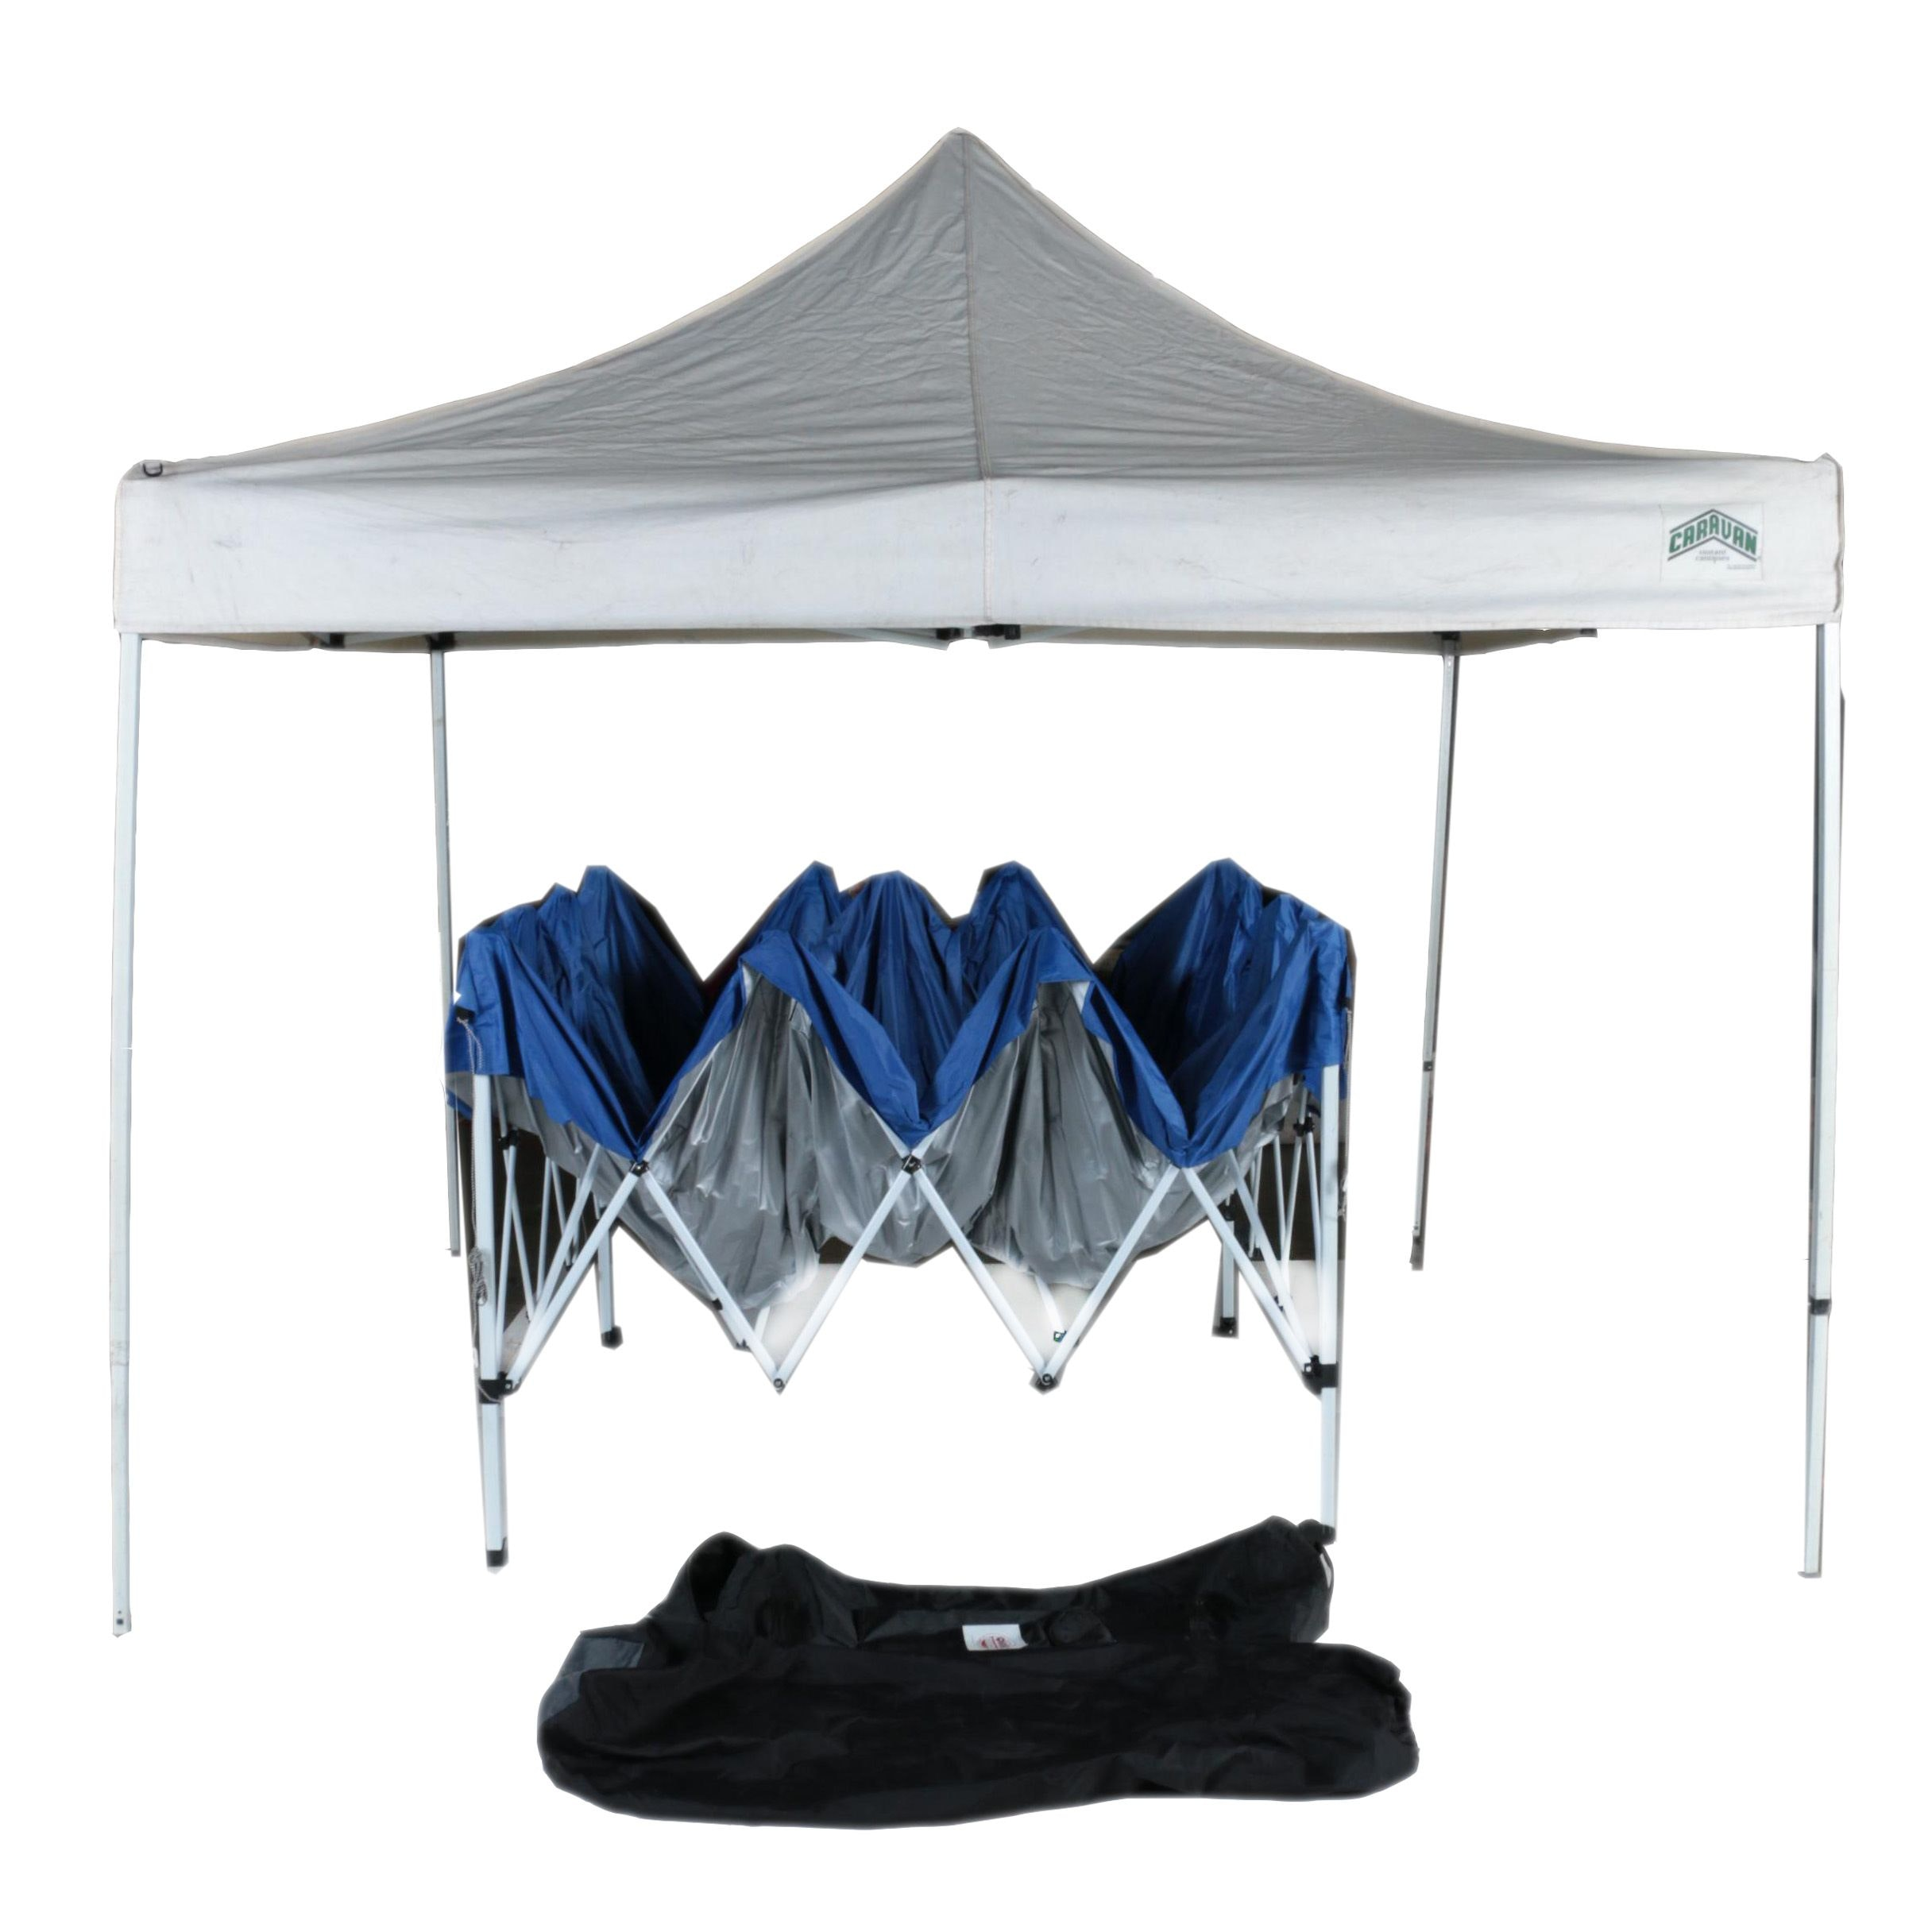 First-Up and E-Z Up Folding Instant Shelter Canopies ...  sc 1 st  Everything But The House & First-Up and E-Z Up Folding Instant Shelter Canopies : EBTH